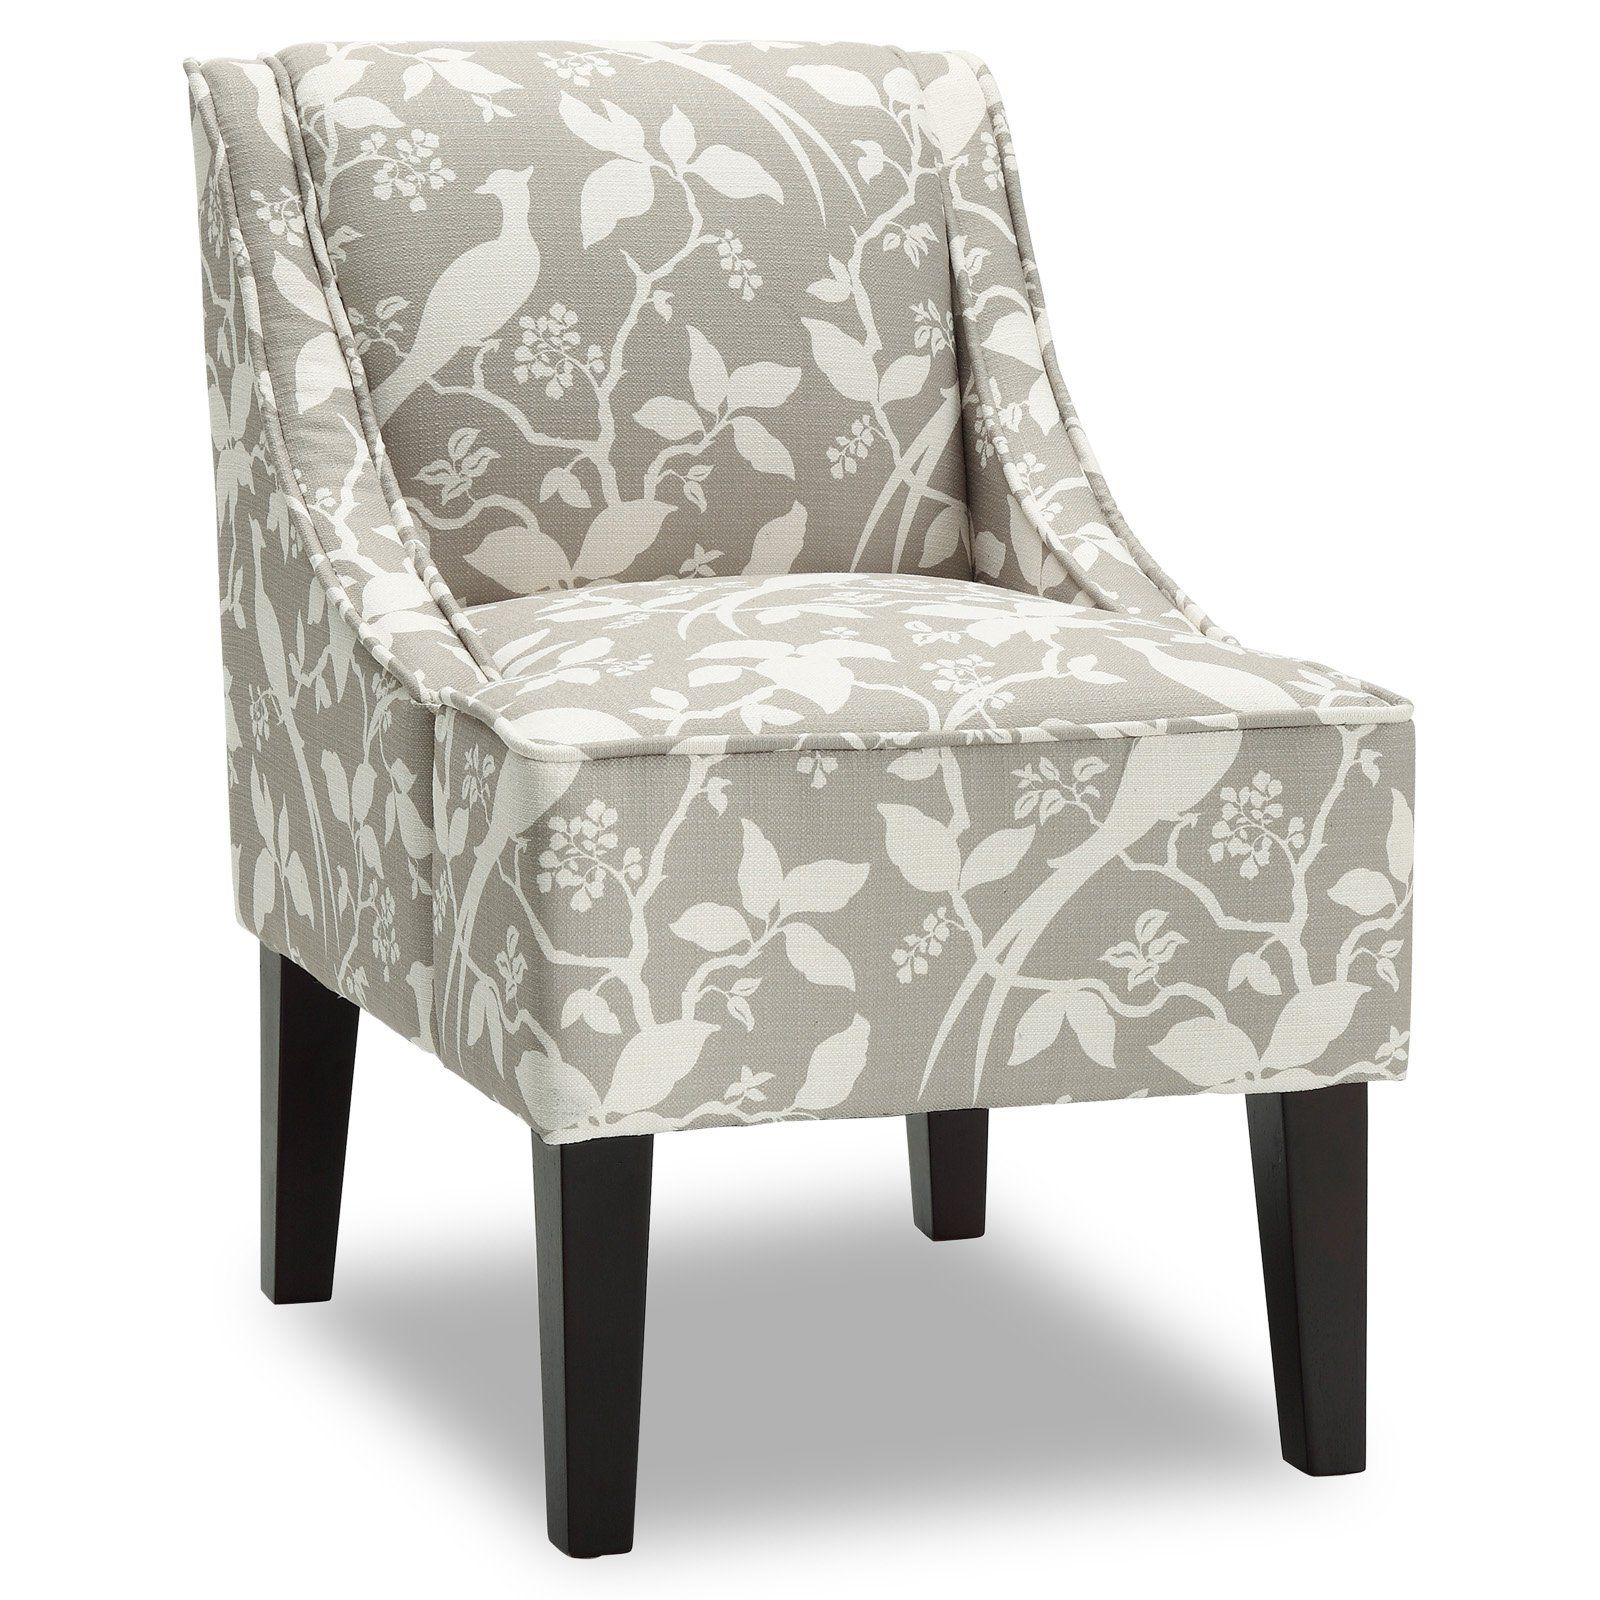 Have To Have It Marlow Accent Bardot Chair 199 99 Hayneedle